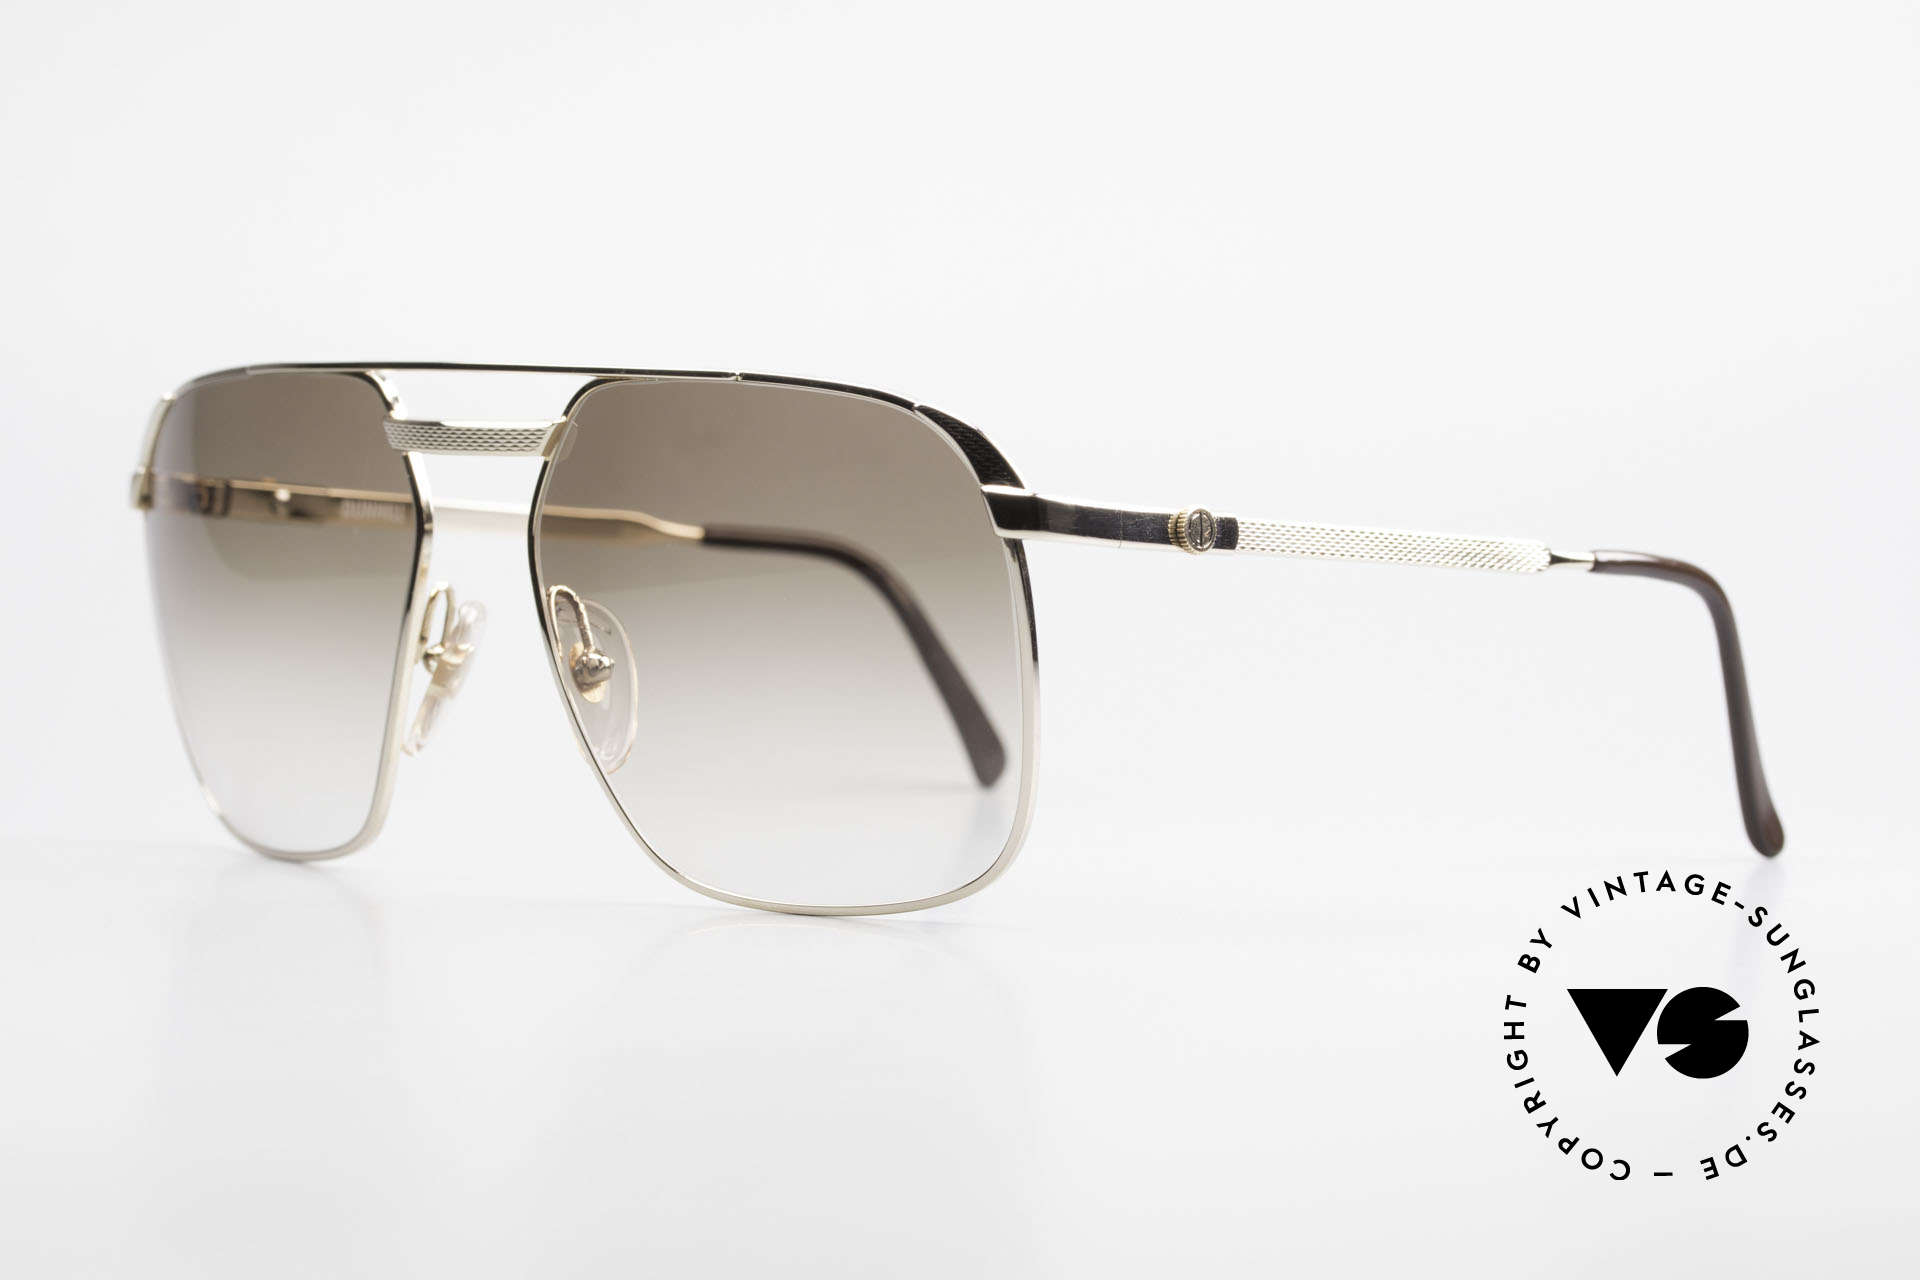 Dunhill 6011 Gold Plated 80's Sunglasses, costly, GOLD-PLATED frame in LARGE size 62-17, 135, Made for Men